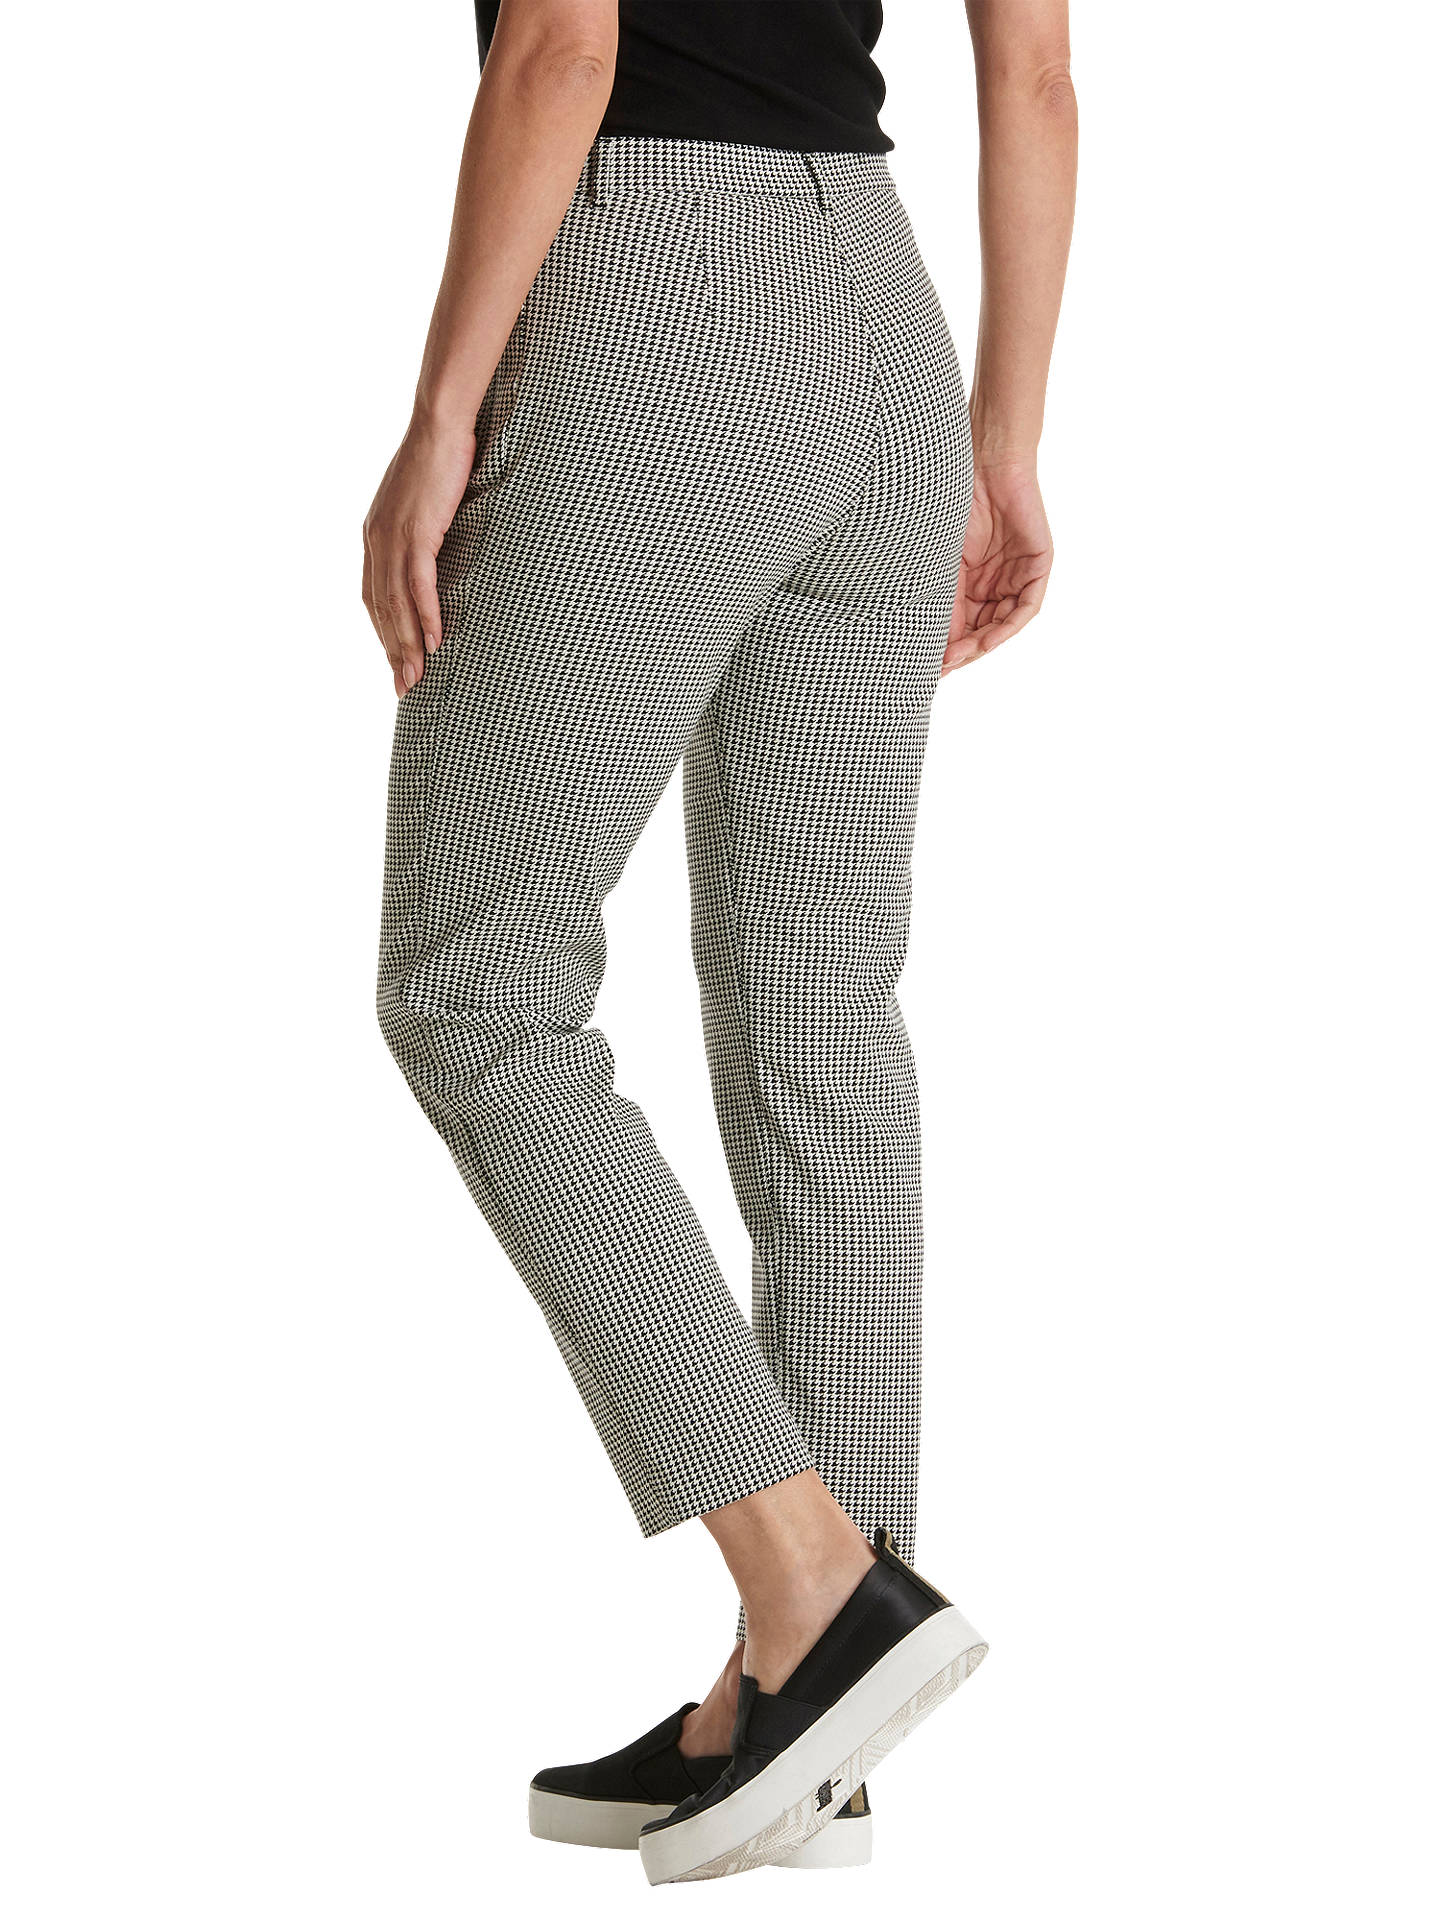 BuyBetty Barclay Houndstooth Trousers, Black/Cream, 20 Online at johnlewis.com